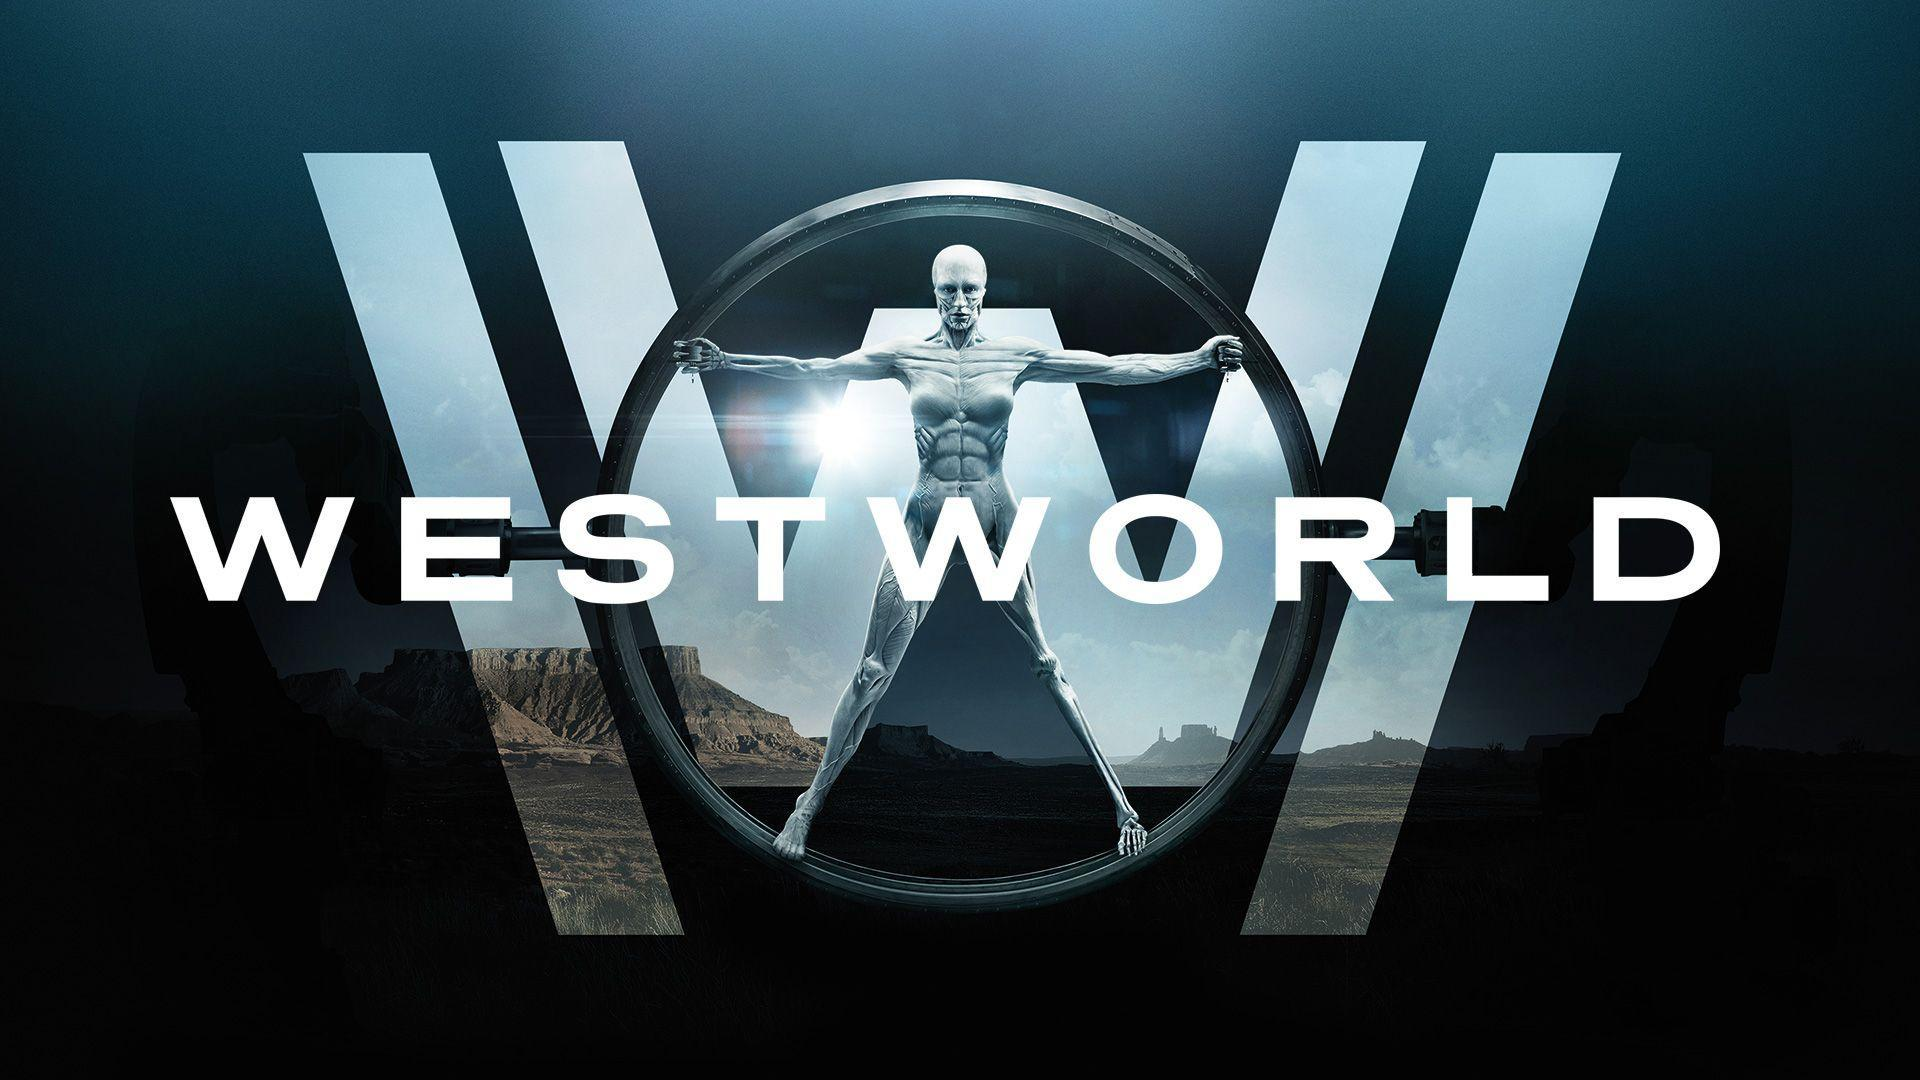 Westworld Wallpapers 1920x1080